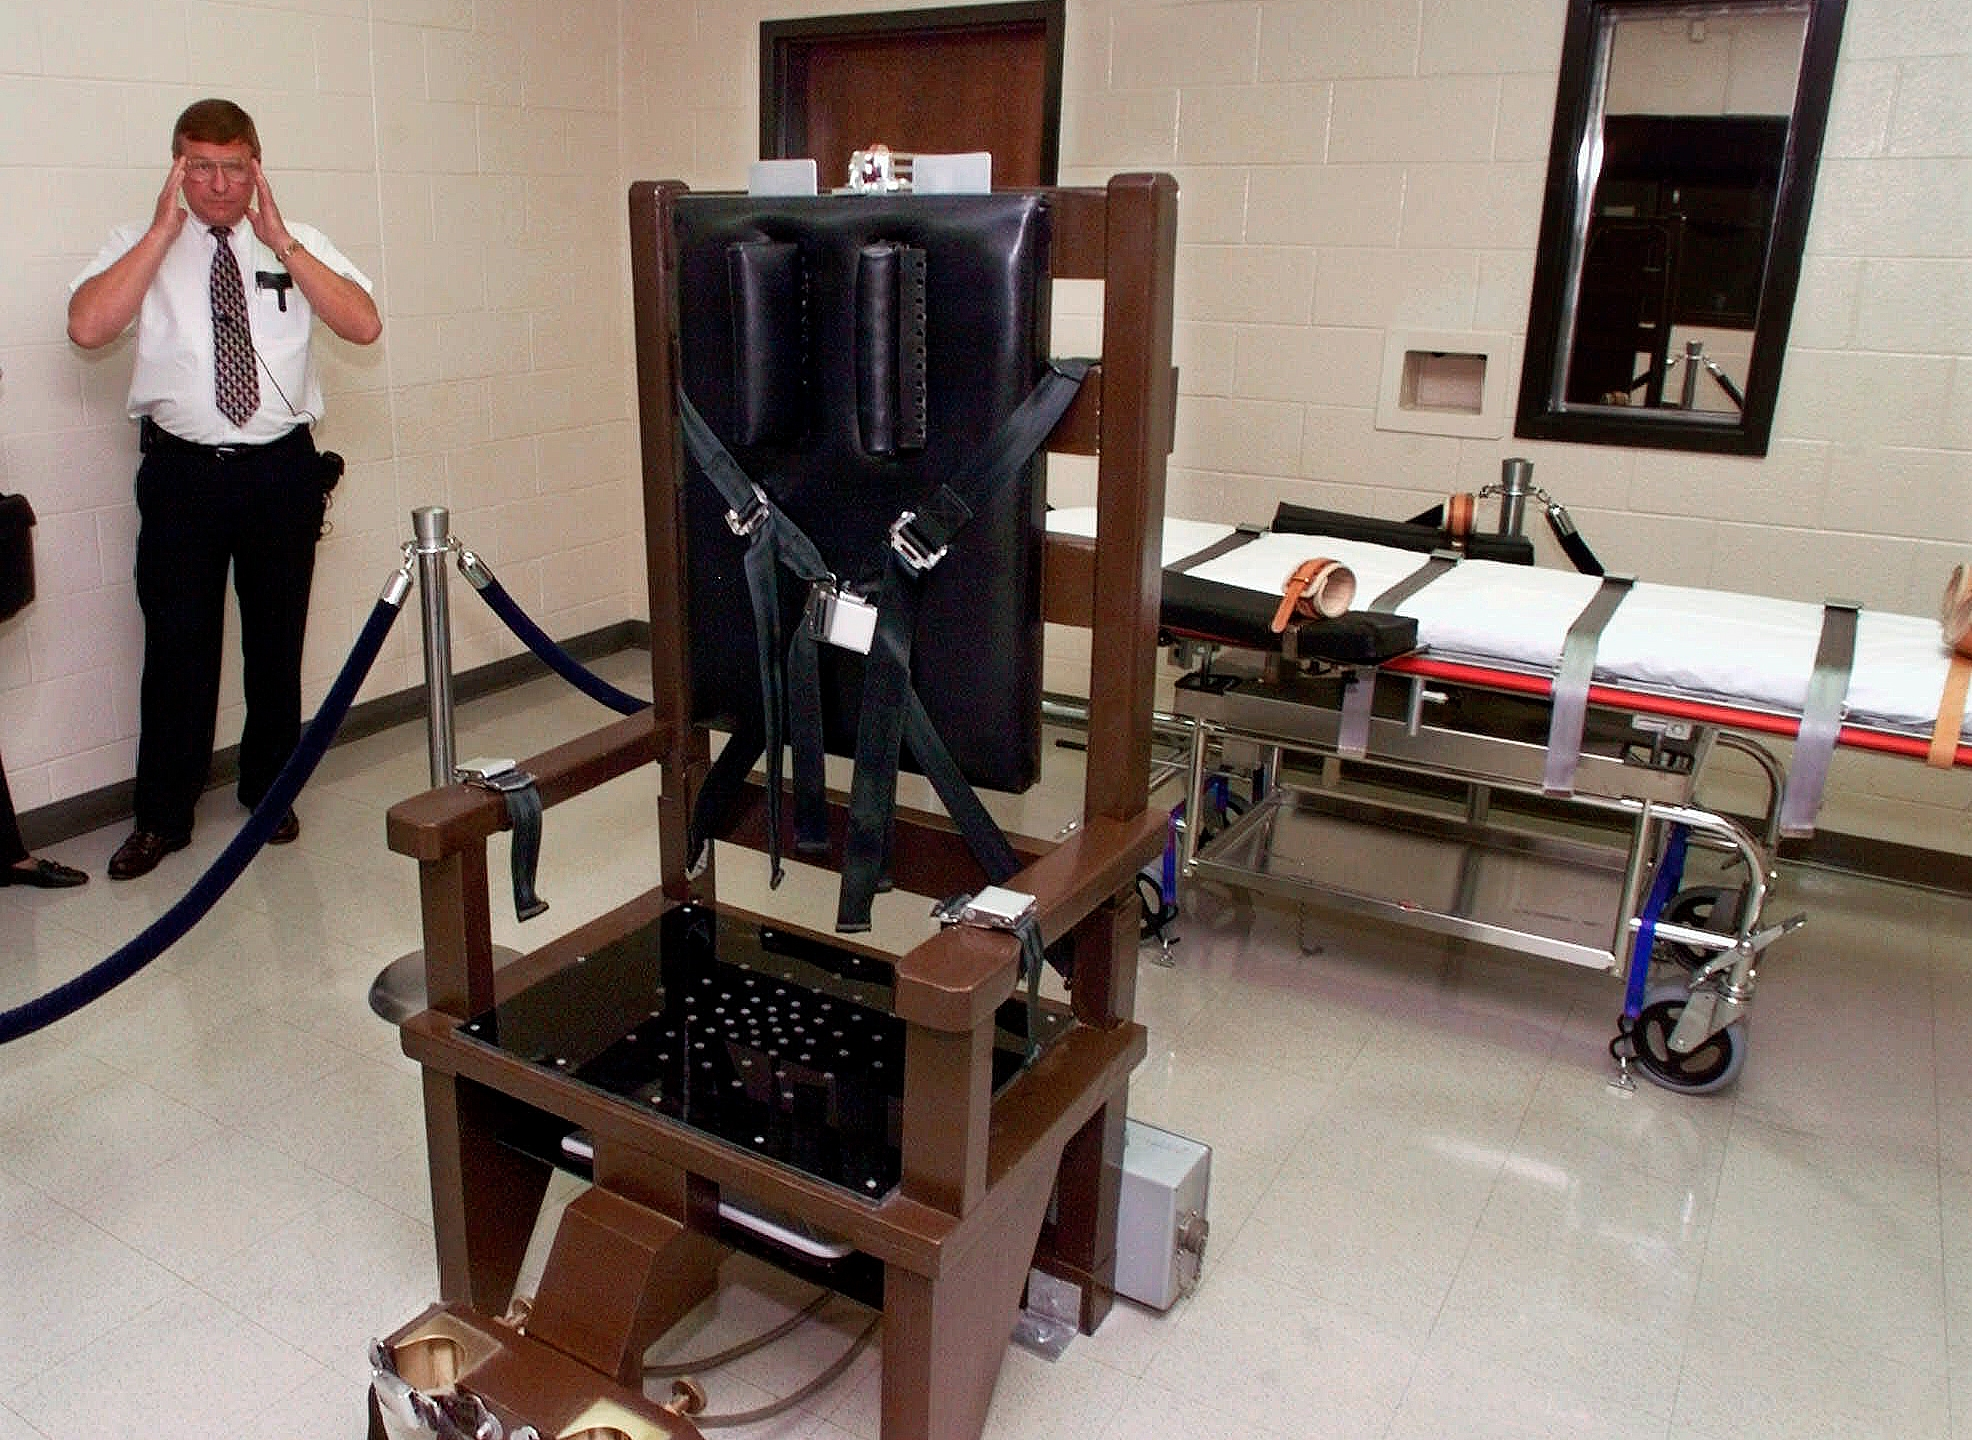 Electric_Chair_Tennessee_60603-159532.jpg90178846